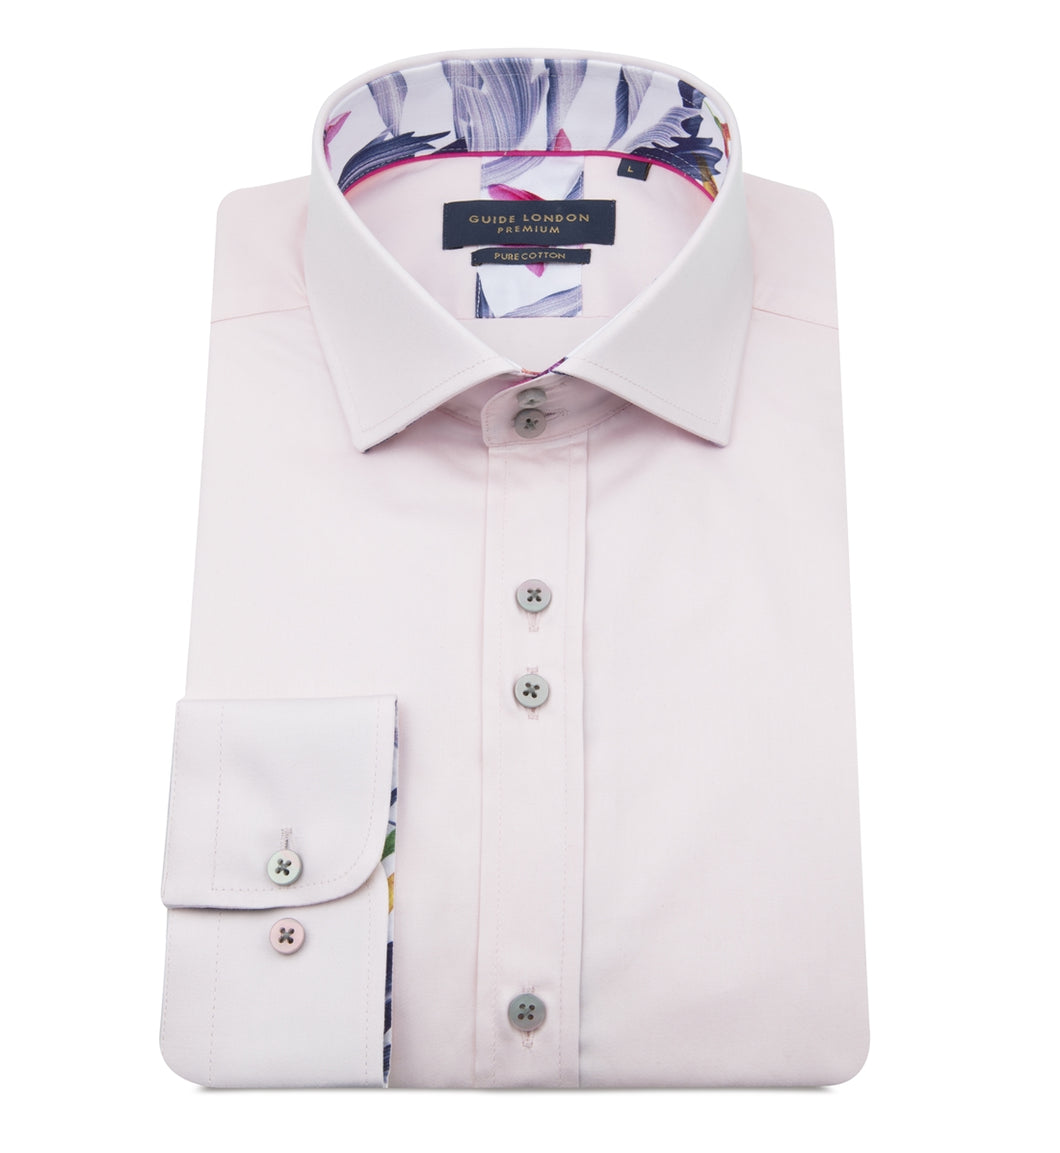 Guide London Plain Tailored Shirt Pink (LS75487)